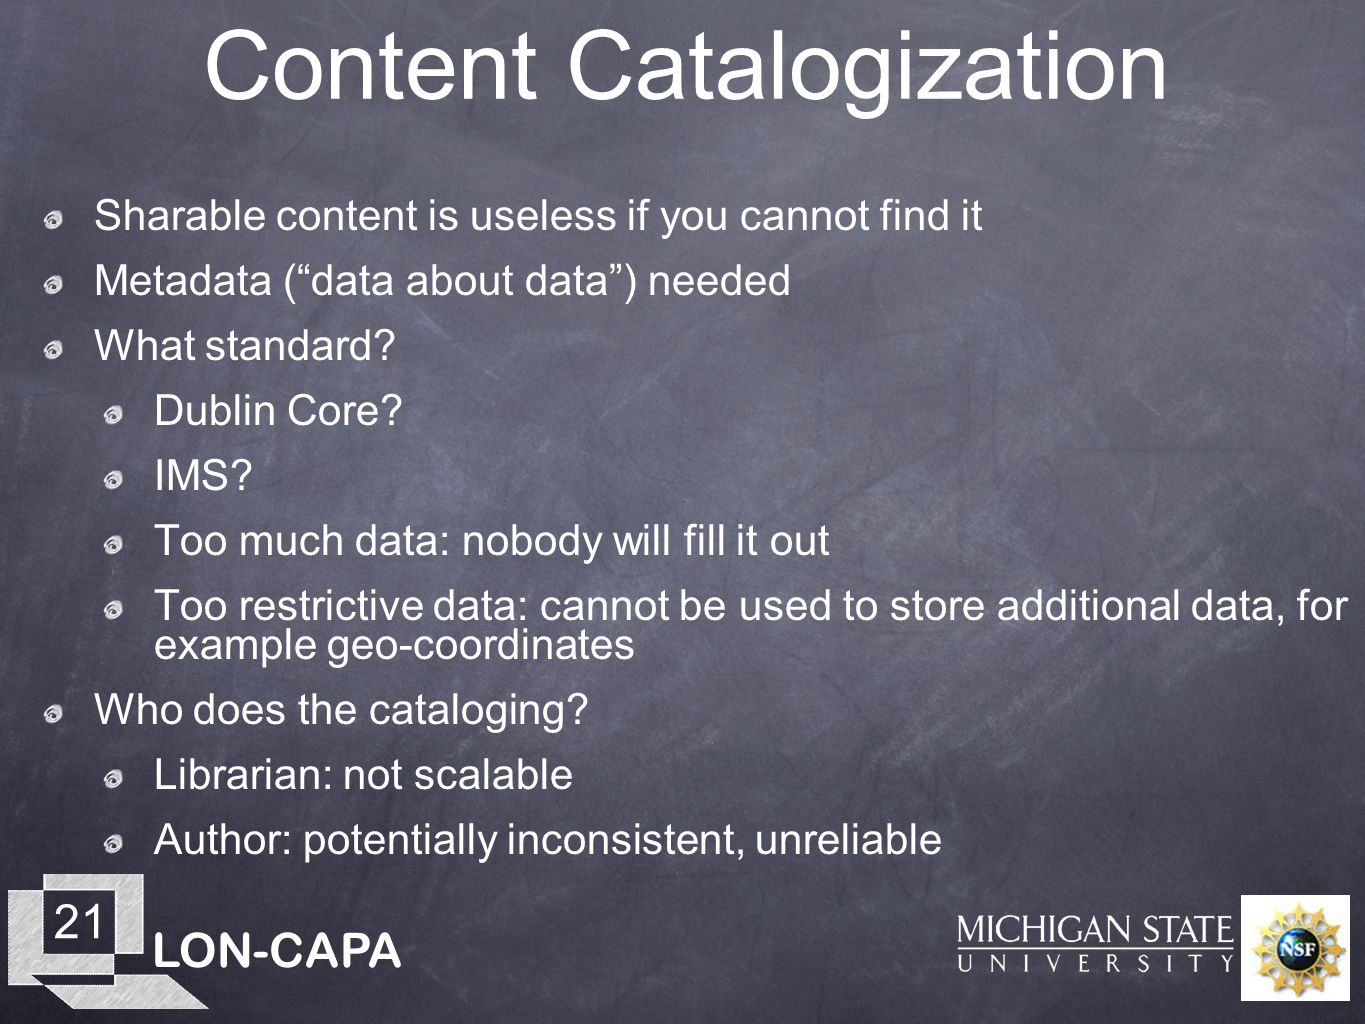 LON-CAPA 21 Content Catalogization Sharable content is useless if you cannot find it Metadata (data about data) needed What standard? Dublin Core? IMS